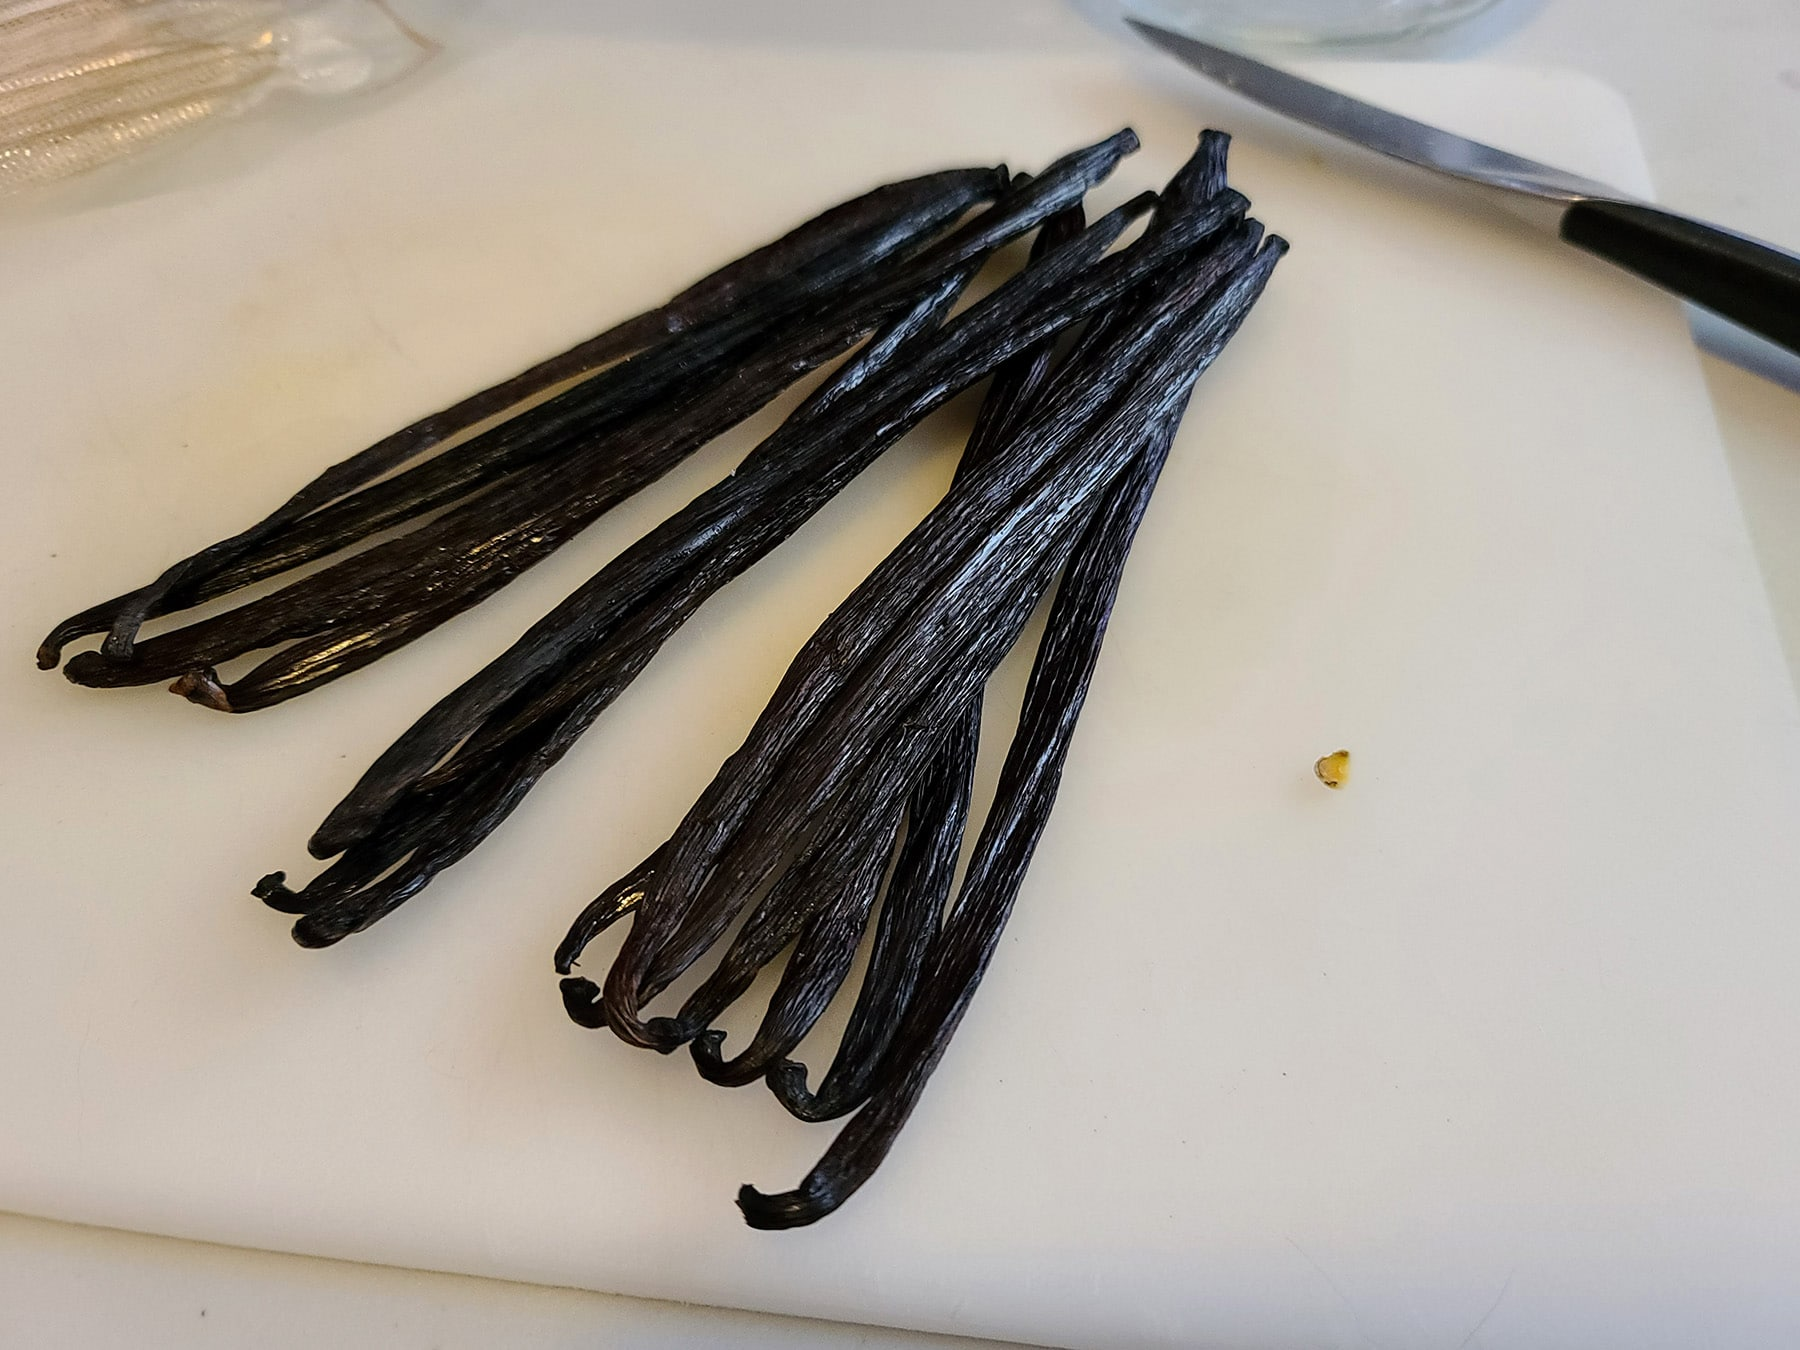 A pile of vanilla beans on a cutting board.